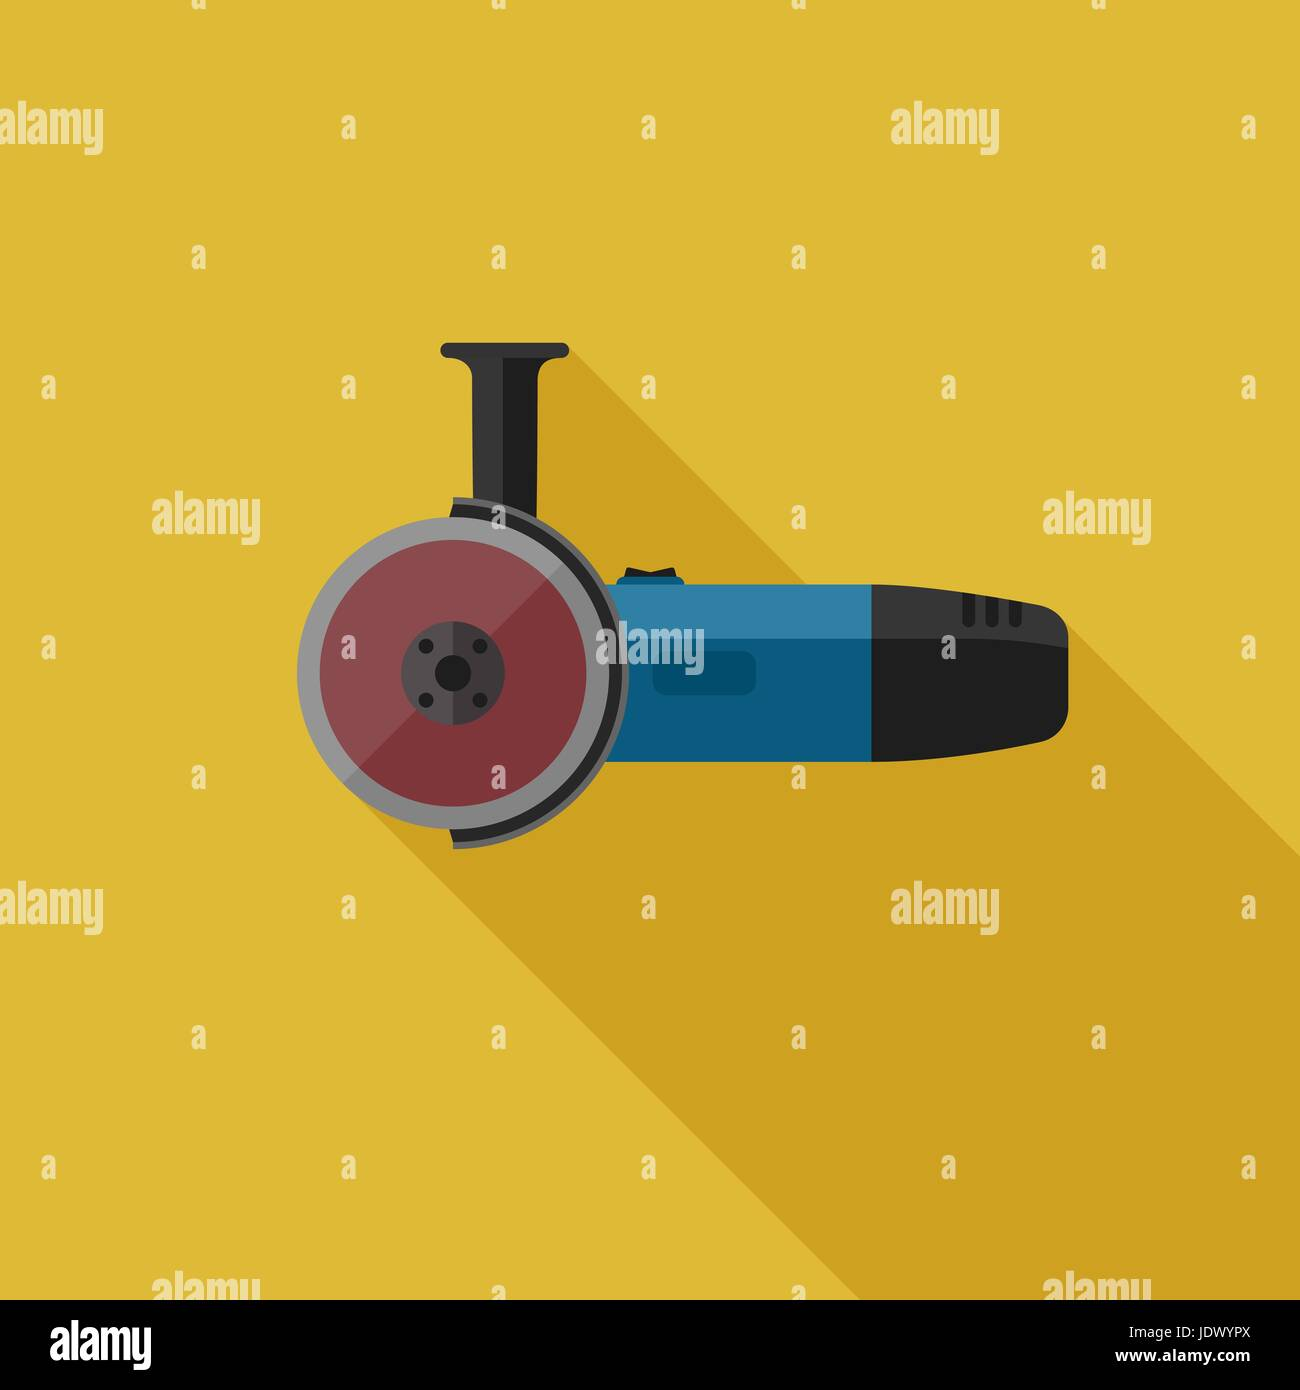 Angle grinder flat icon - Stock Vector